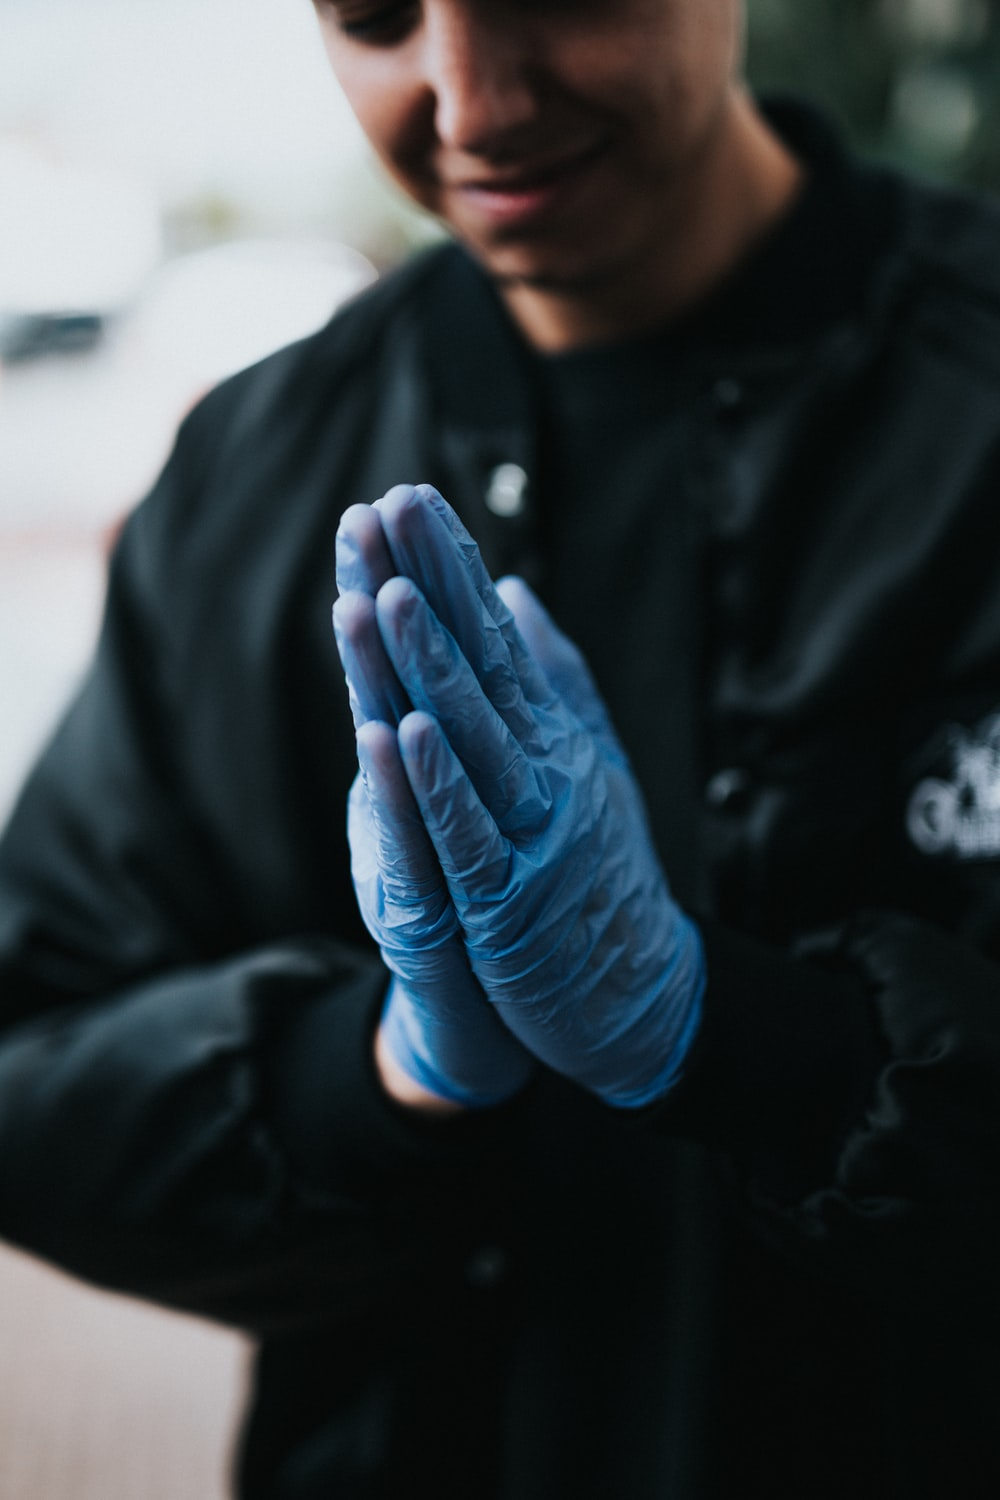 person in black jacket with blue gloves